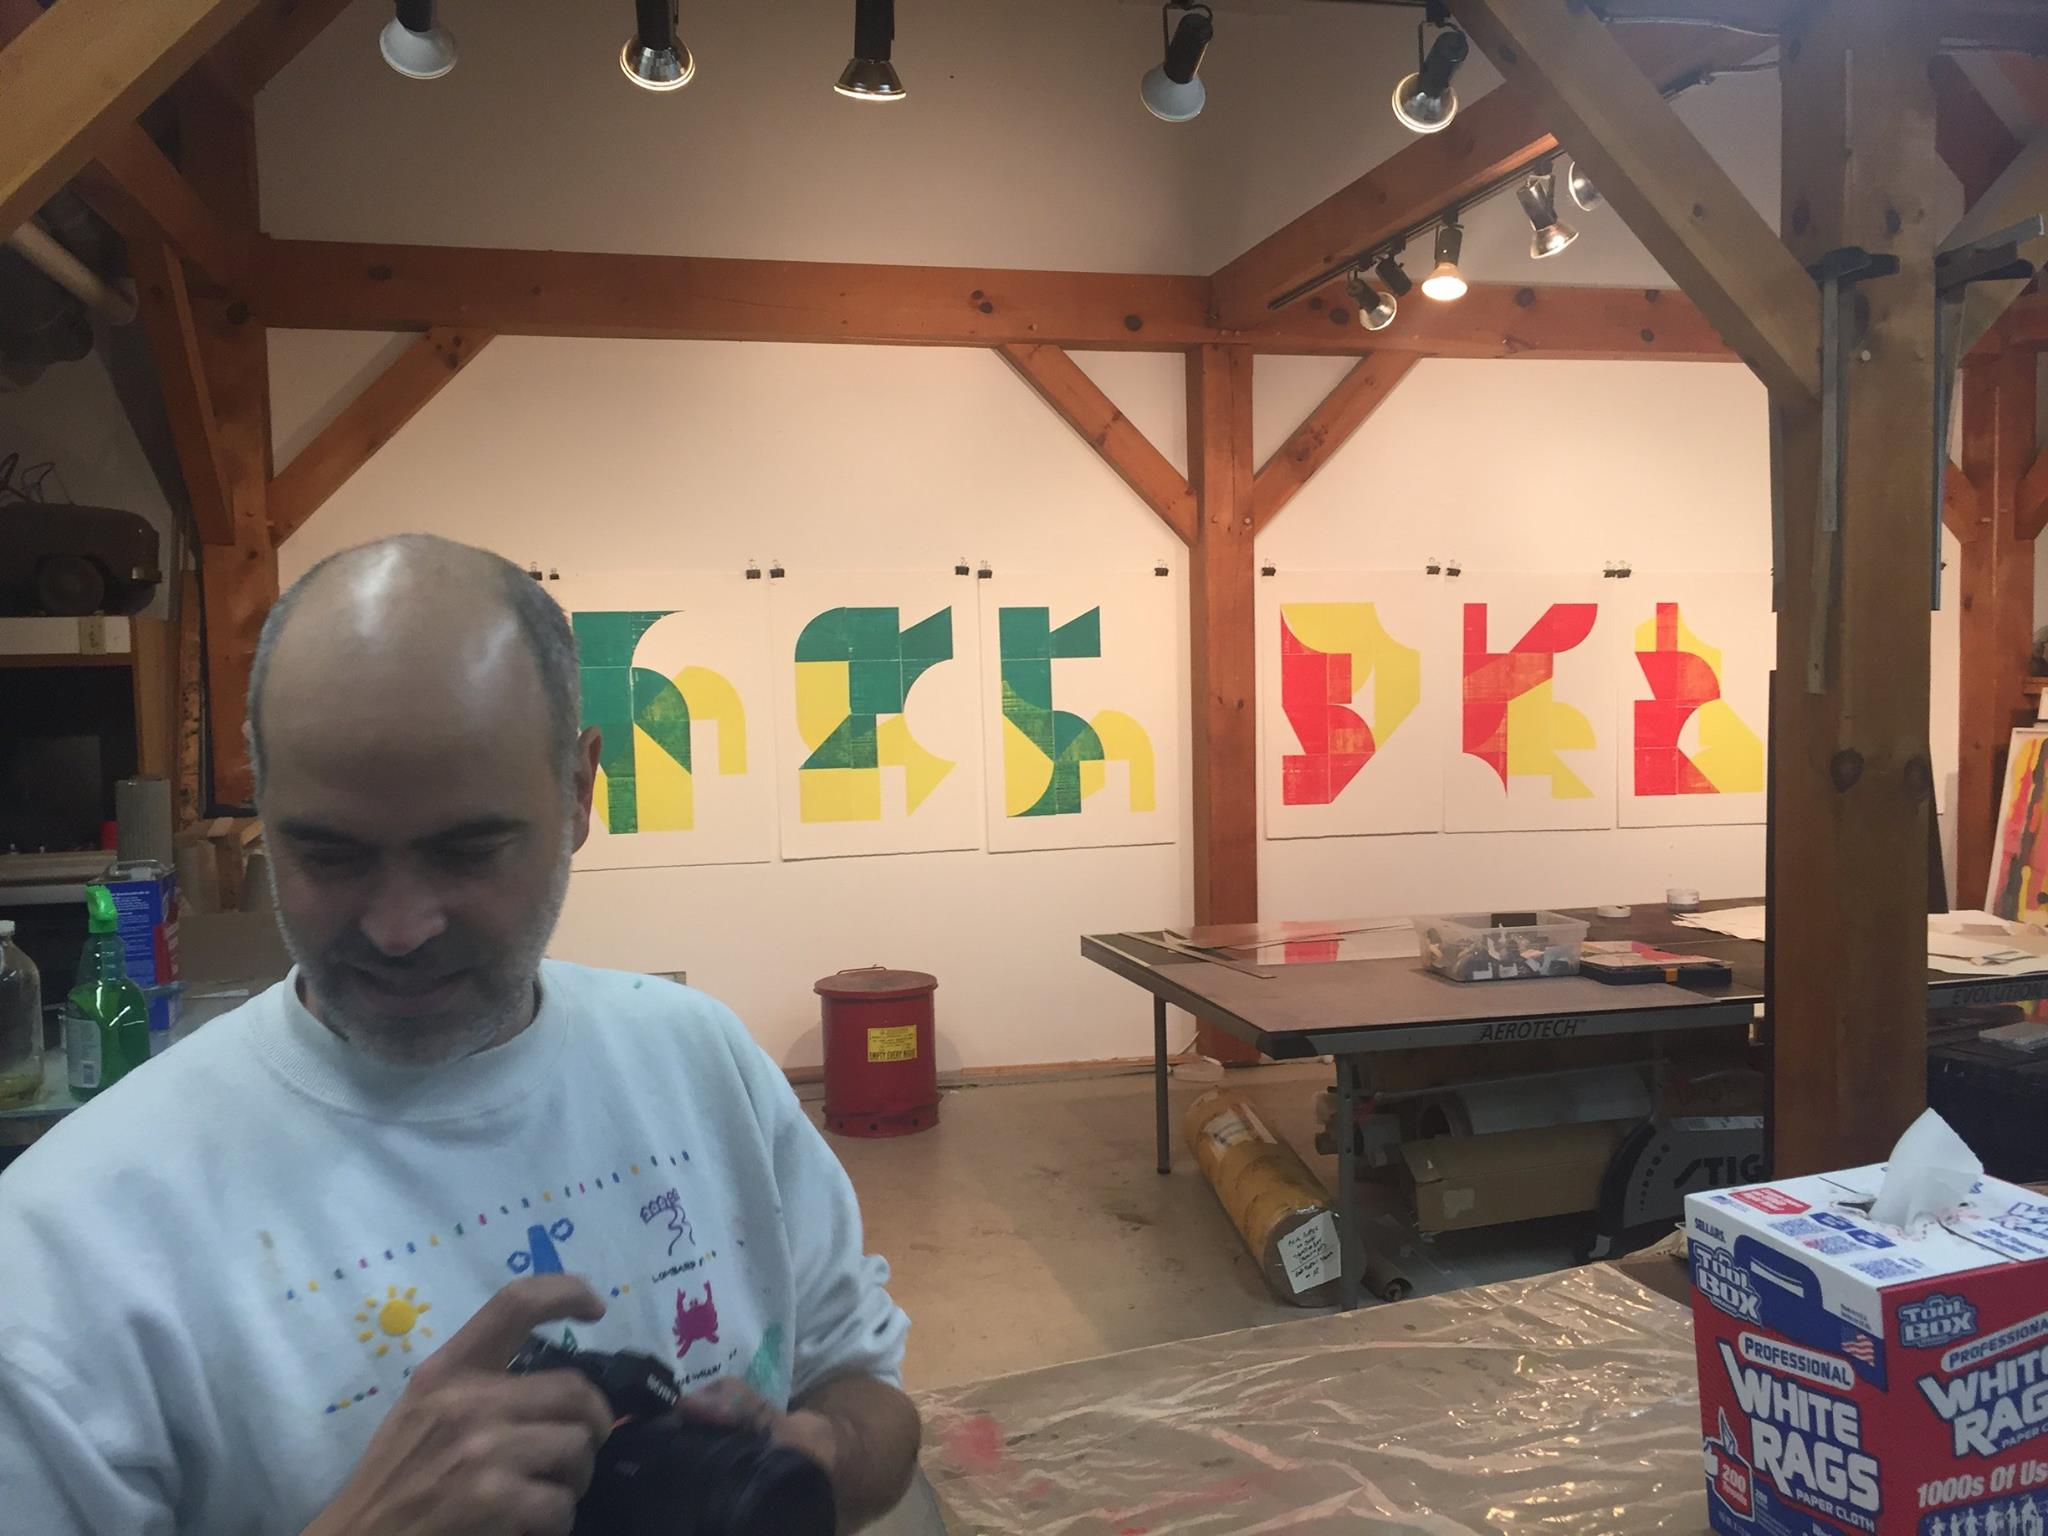 All in a day's work: the prints, hot-off-the-press, hang on the walls of the shop to dry.